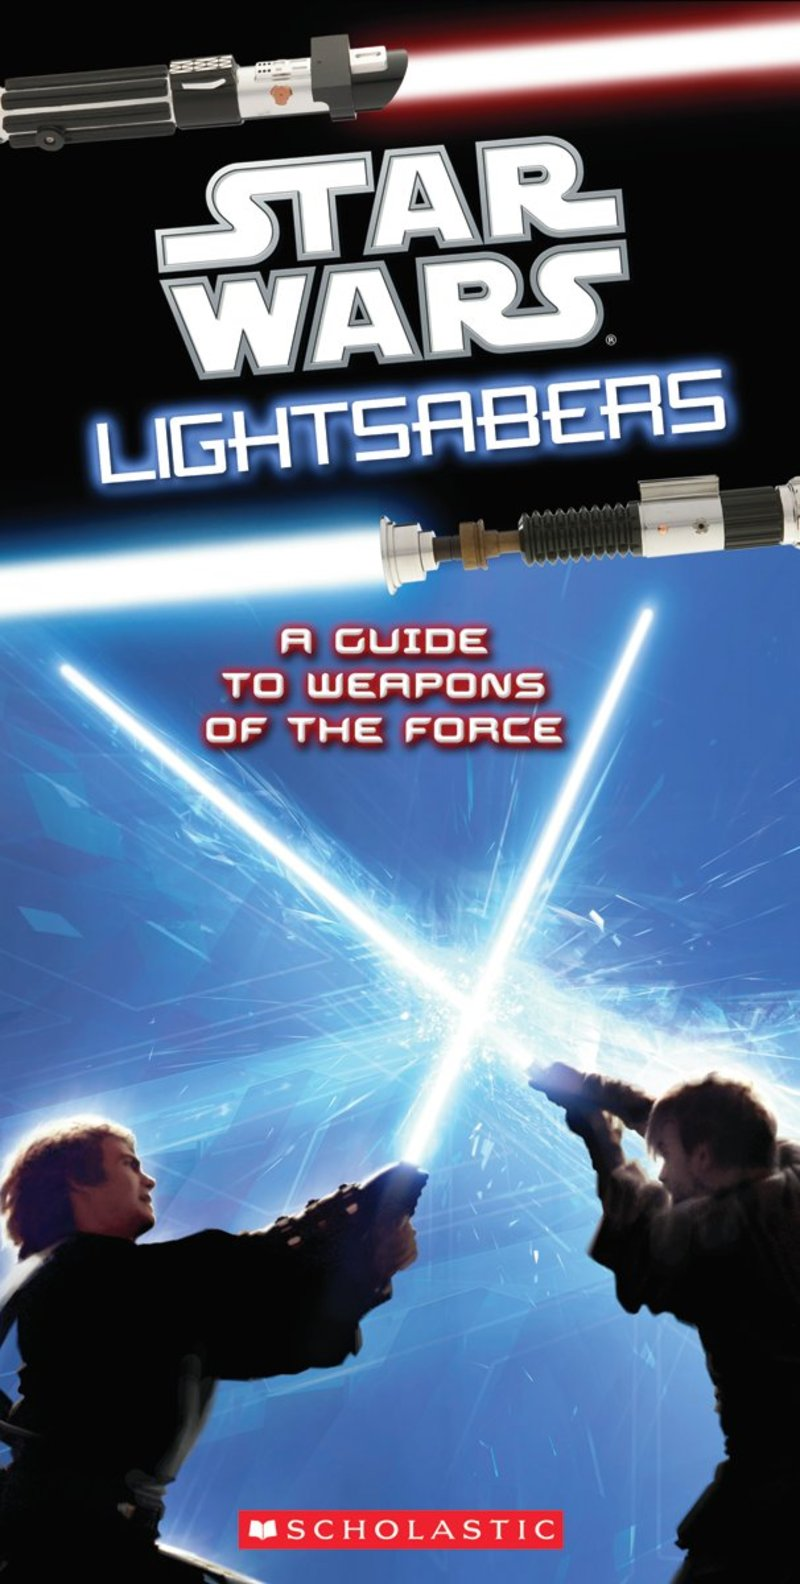 Star Wars  Lightsabers  A Guide To Weapons Of The Force